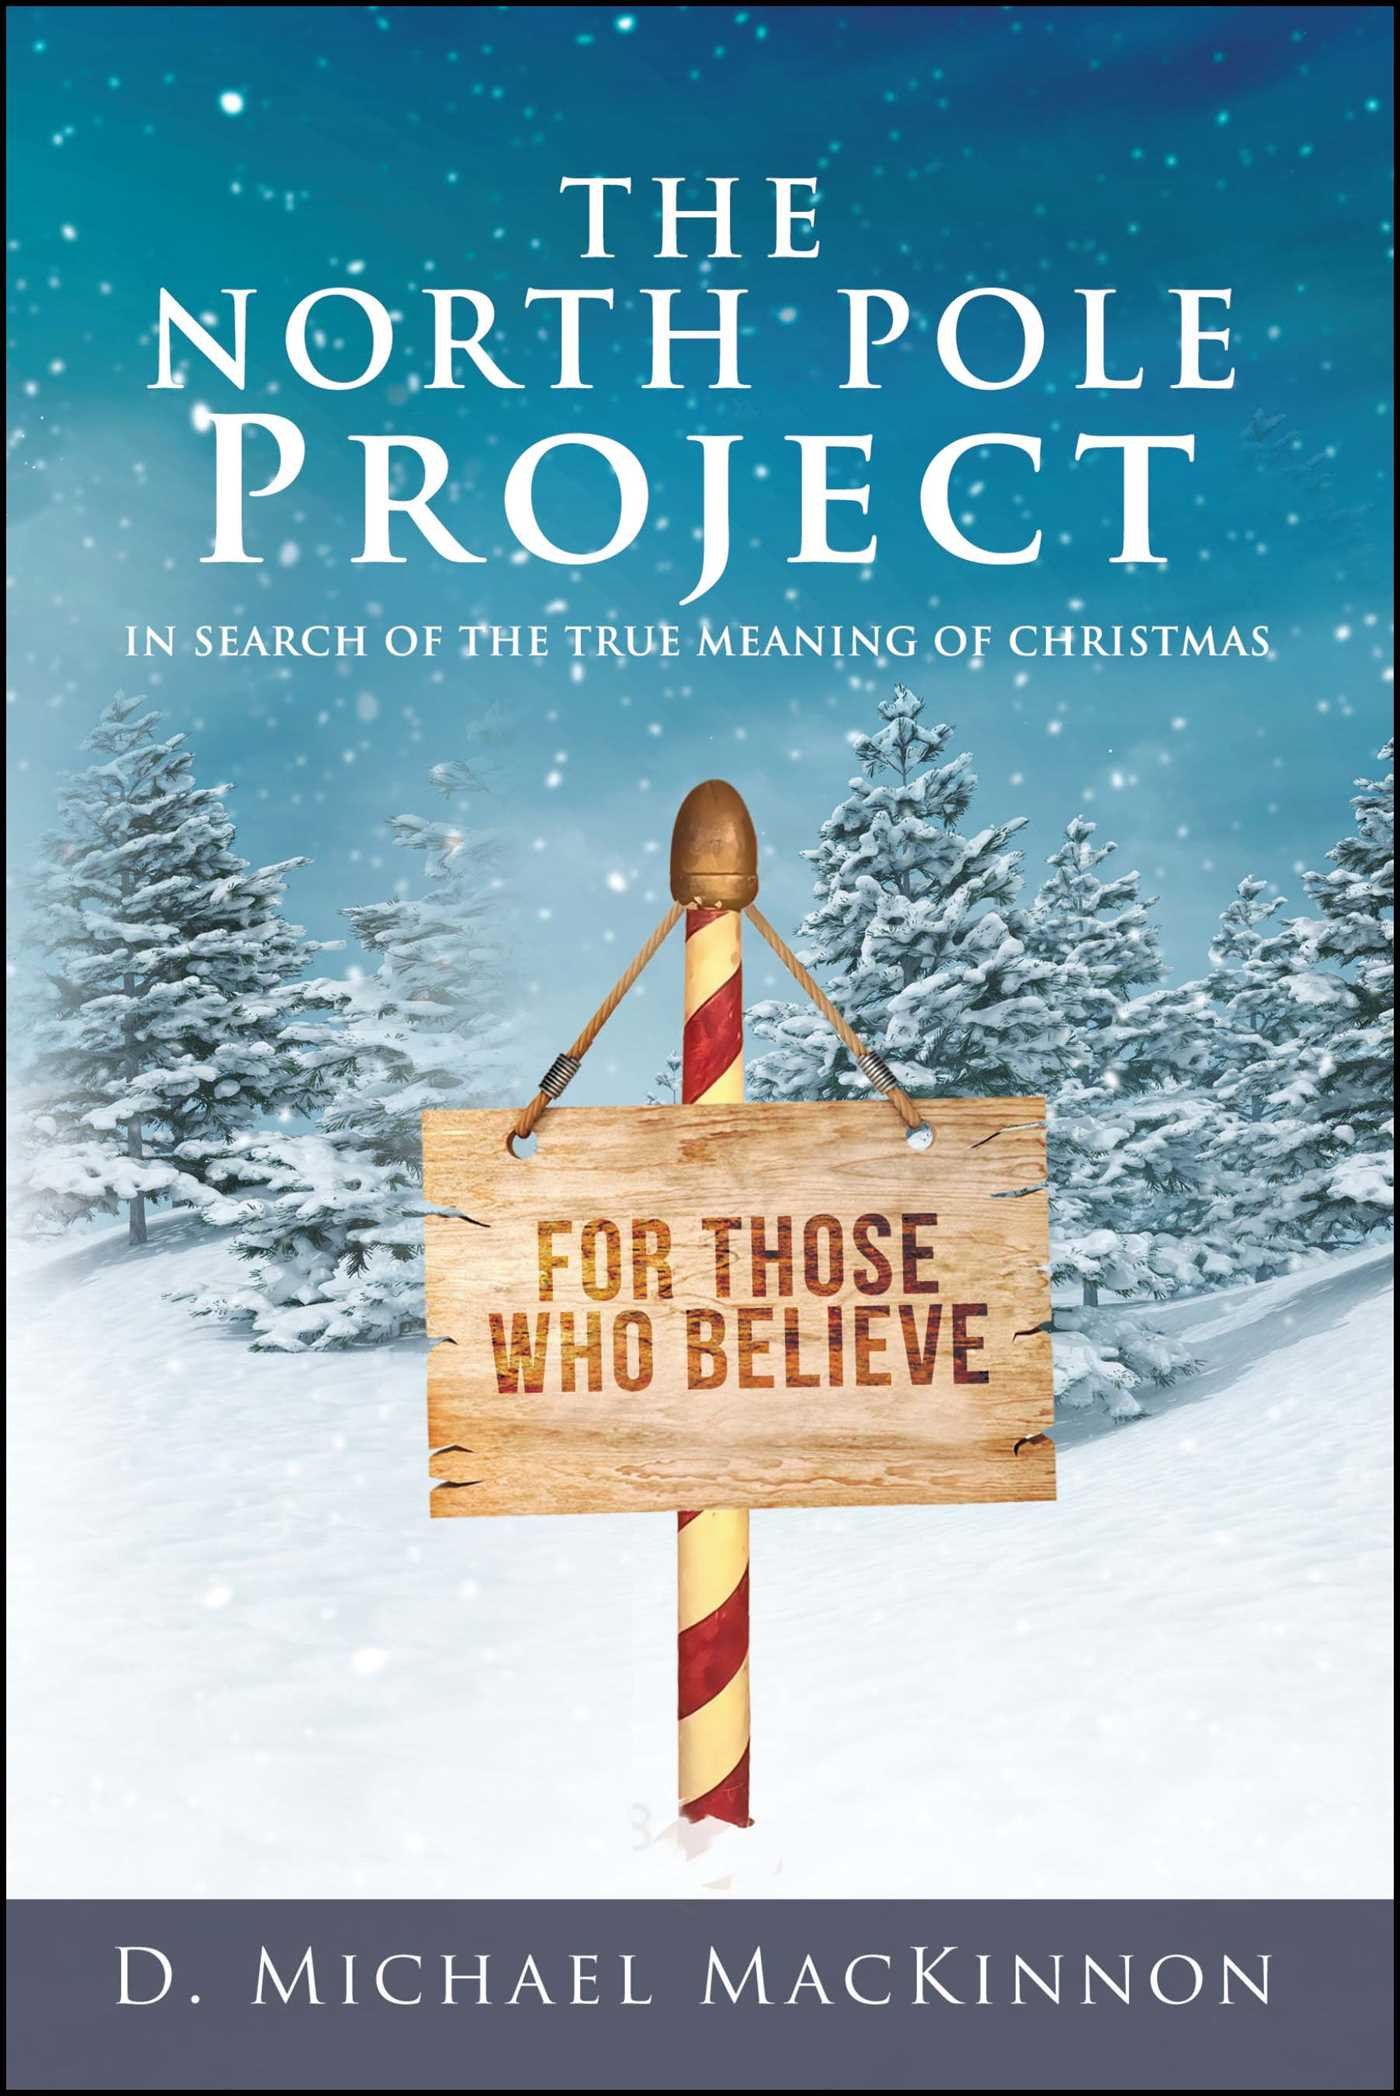 The North Pole Project | Book by D. Michael MacKinnon | Official ...